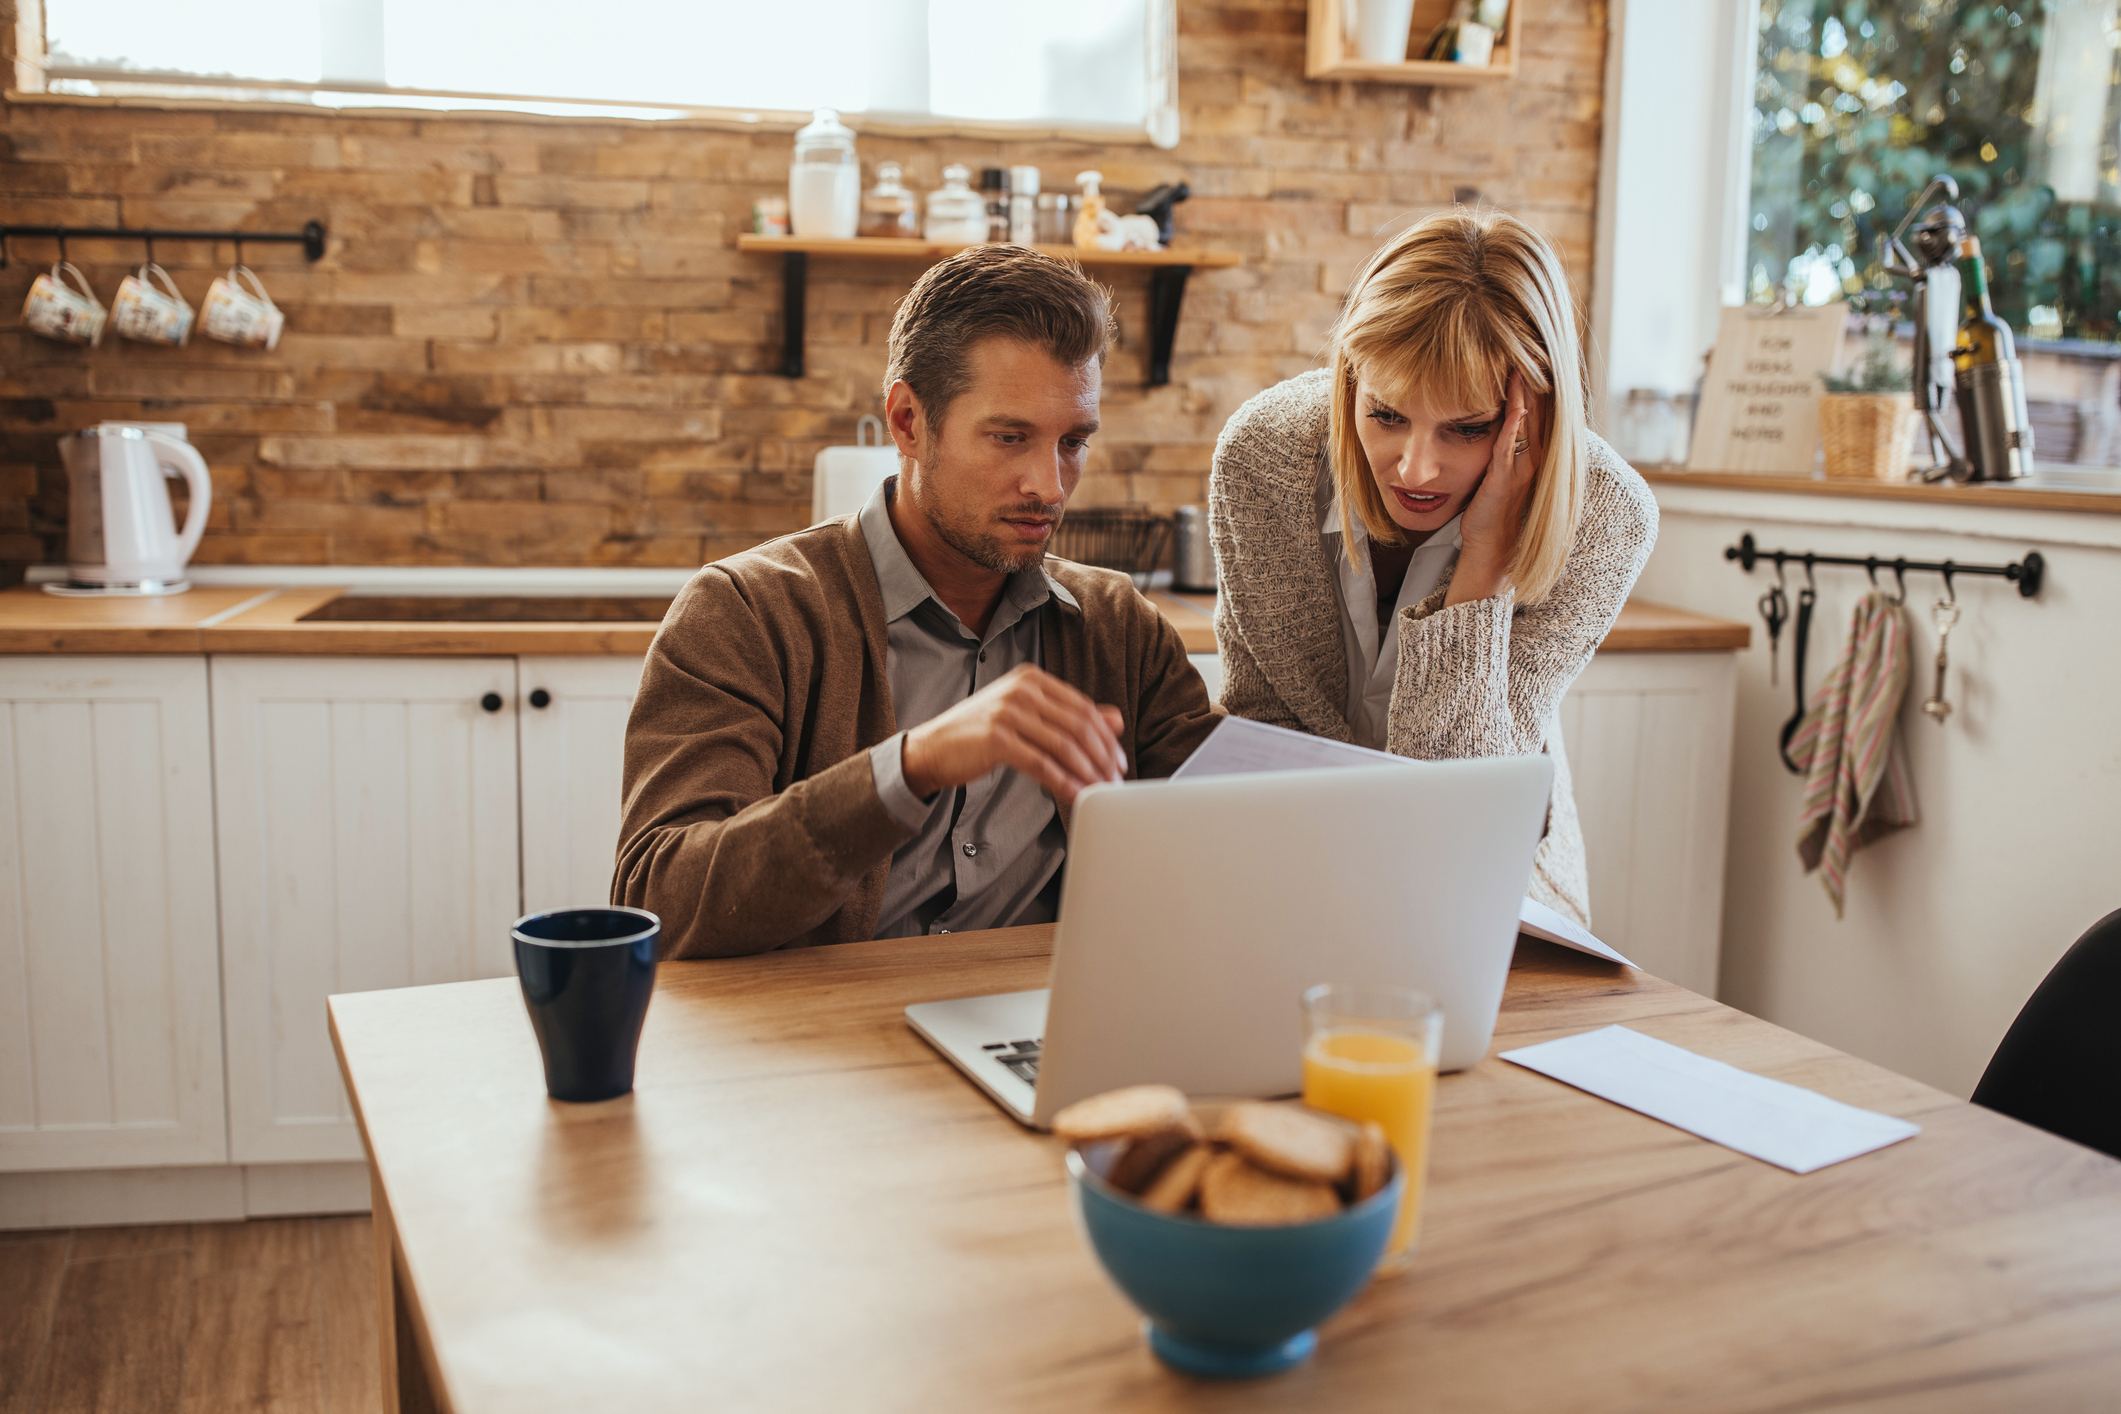 Man and woman worriedly looking at laptop